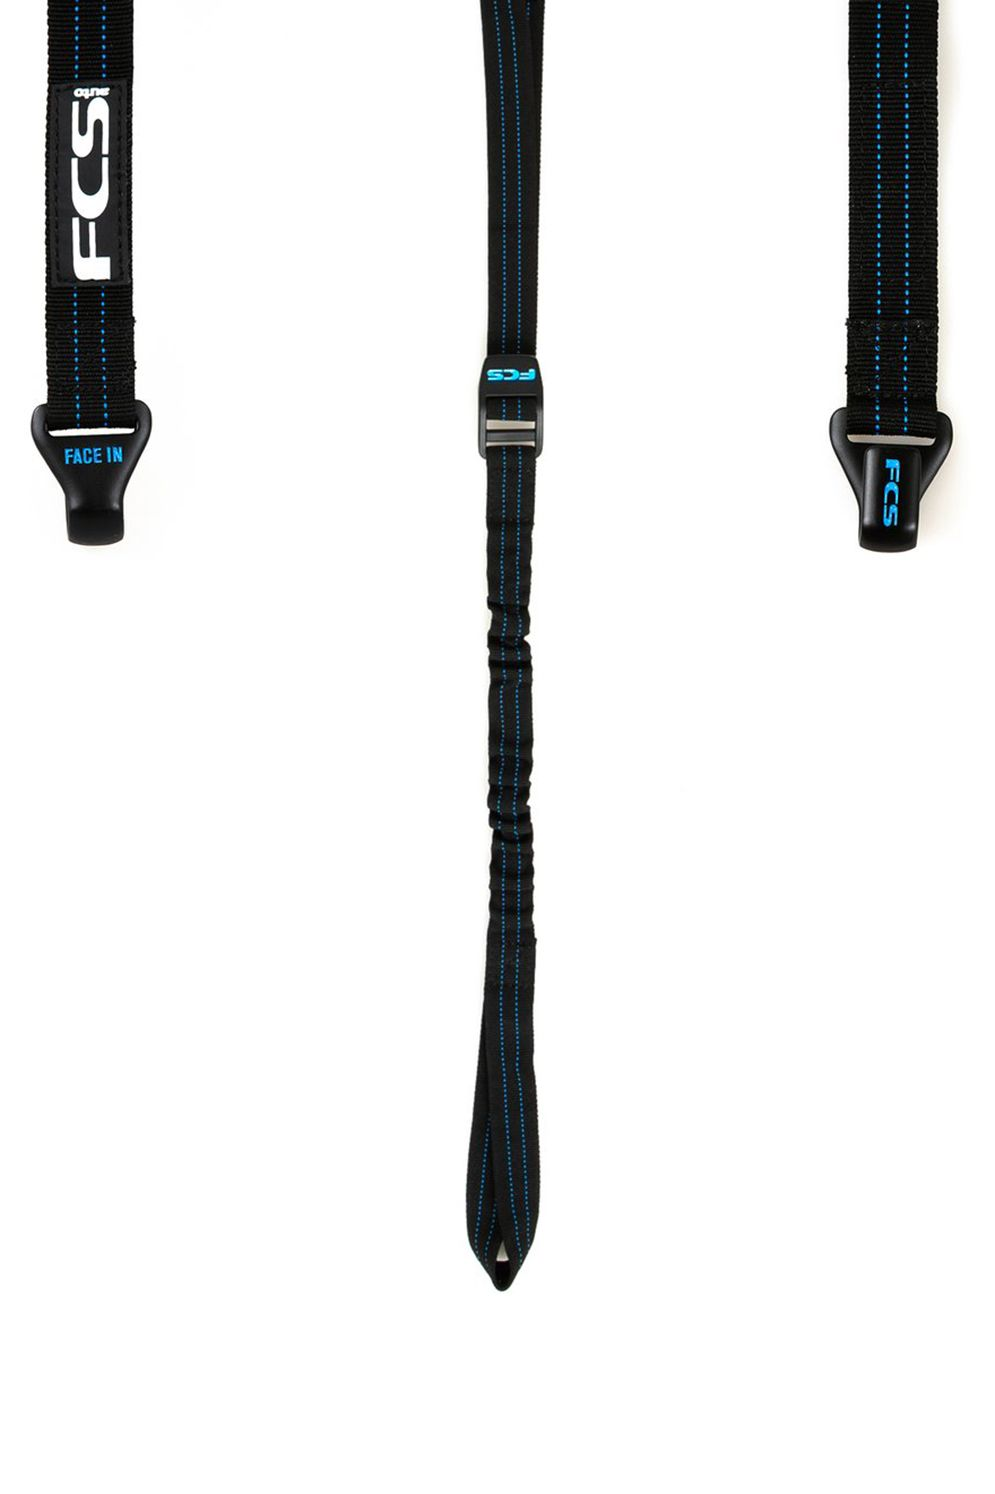 Fcs Fin Leash BUNGEE TIE DOWNS Black